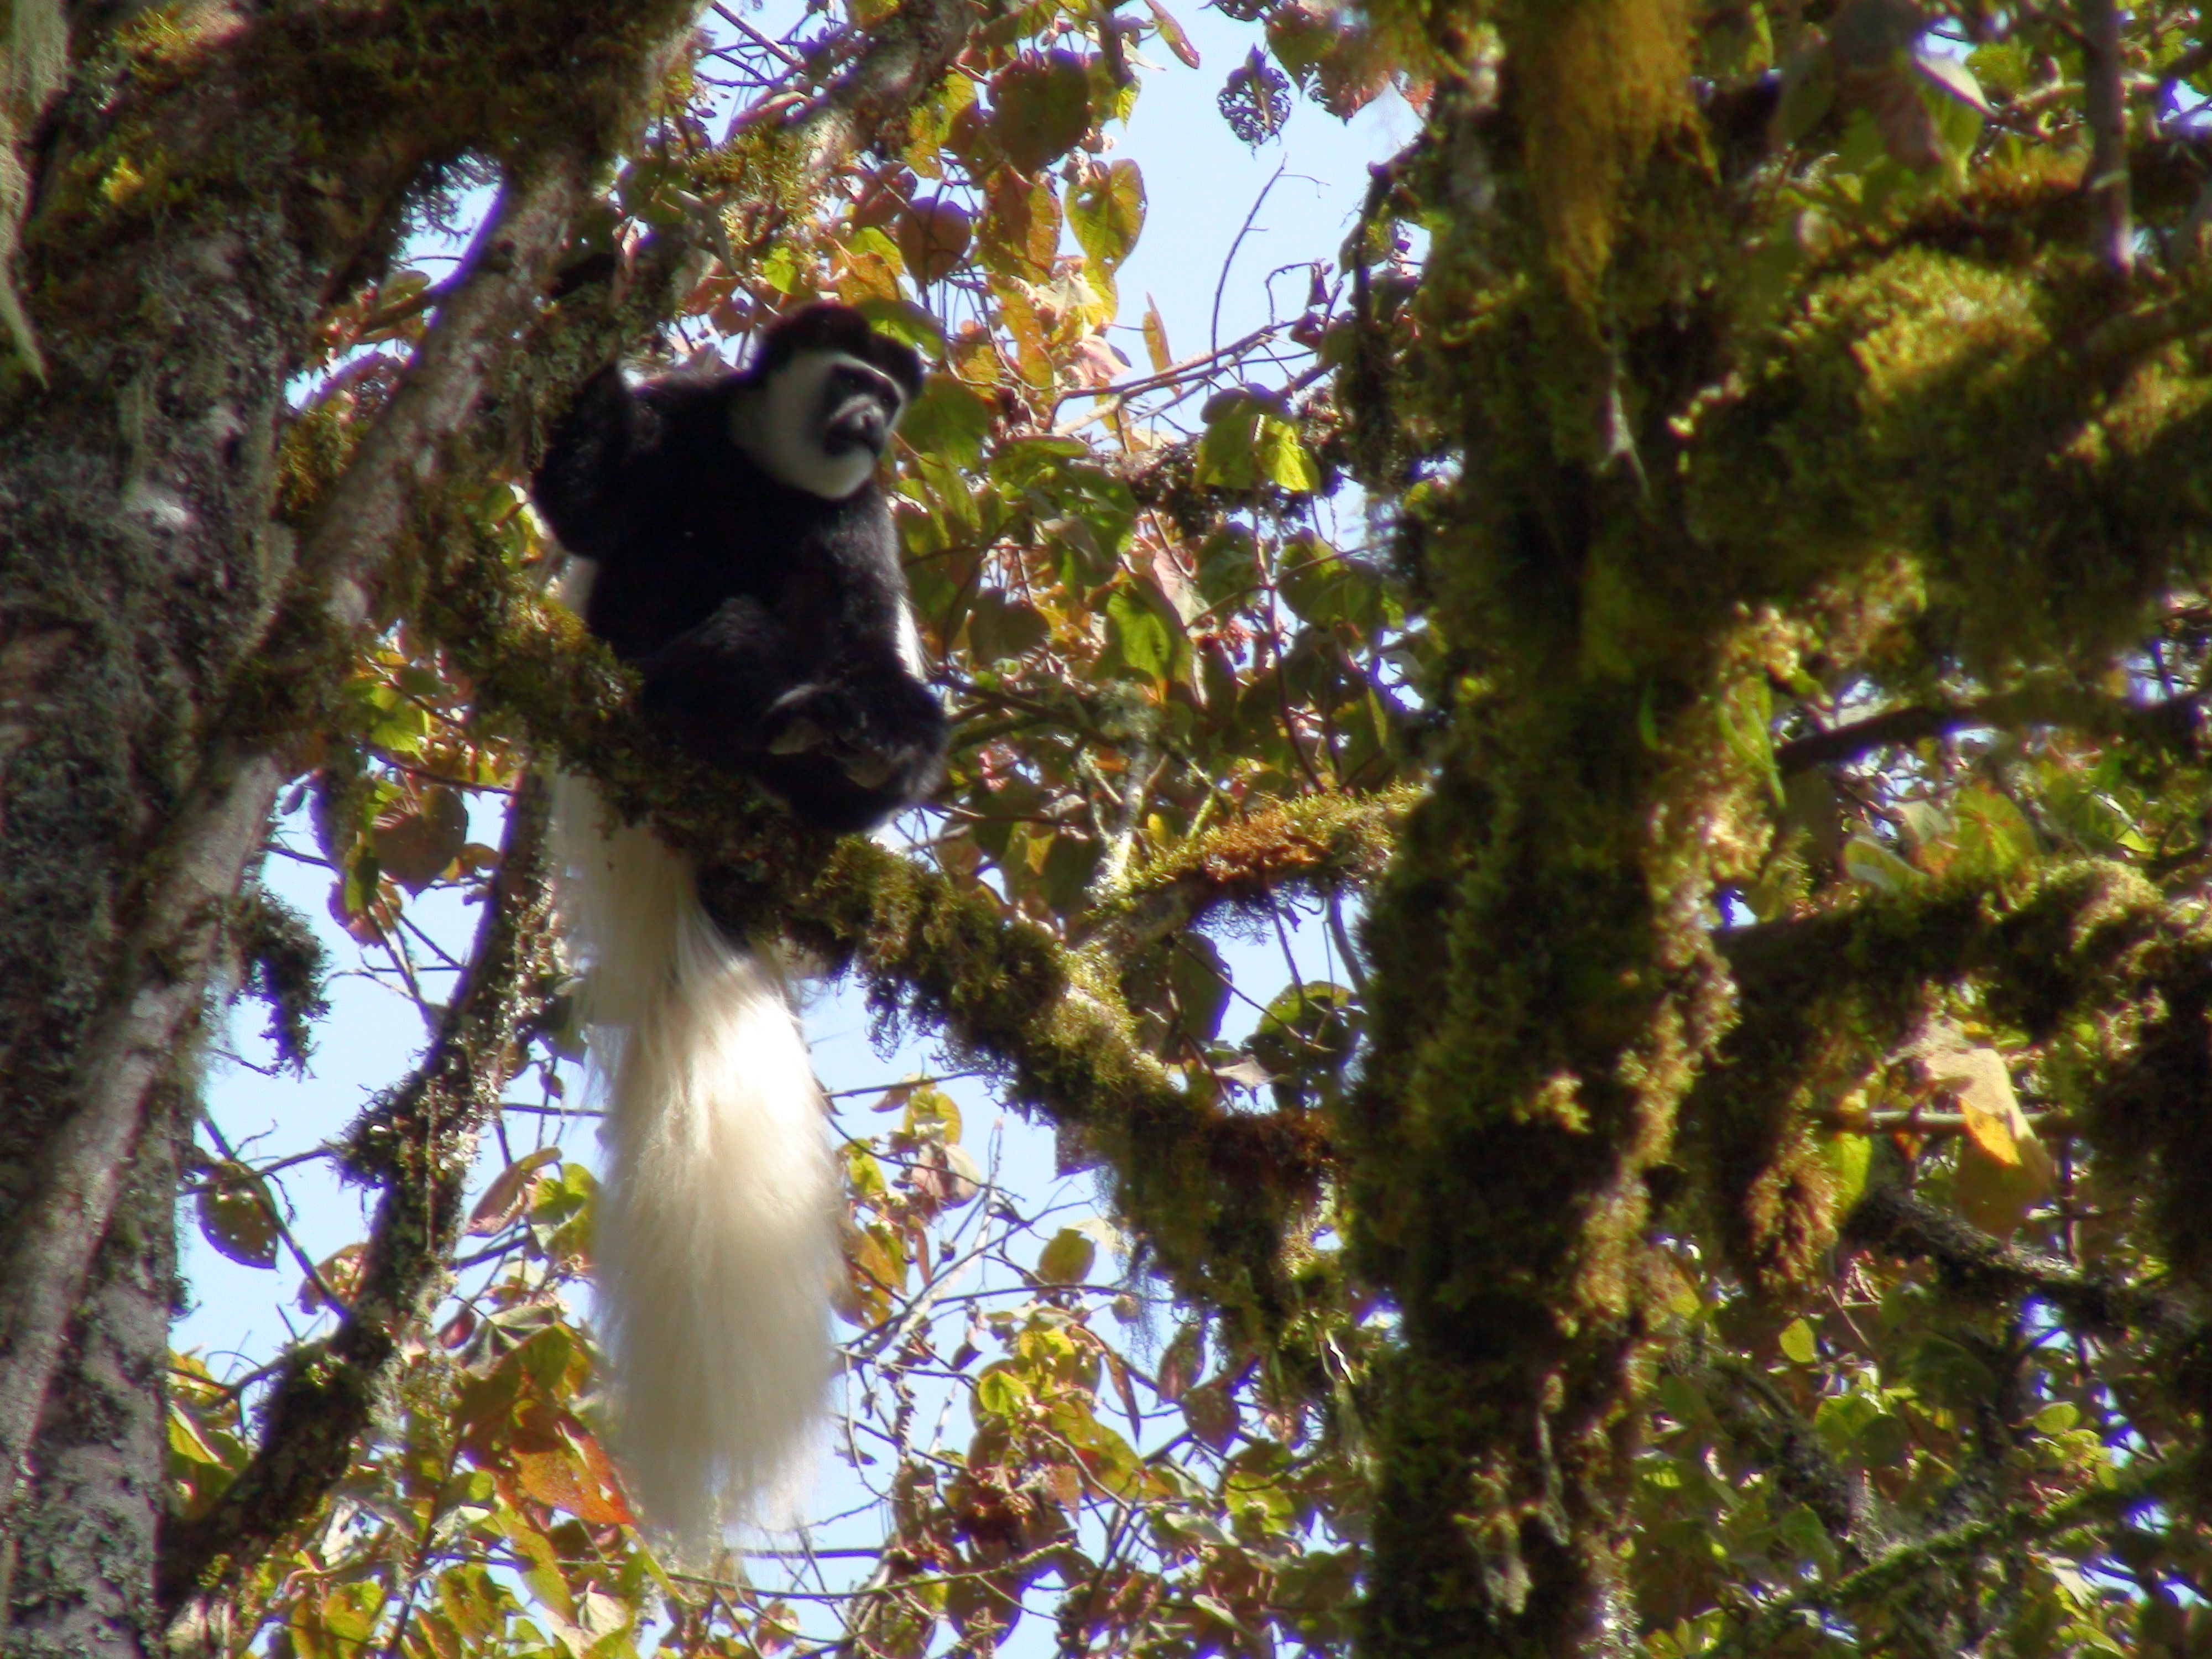 Meeting the Colobus monkey was definitely one of the highlights of my trip